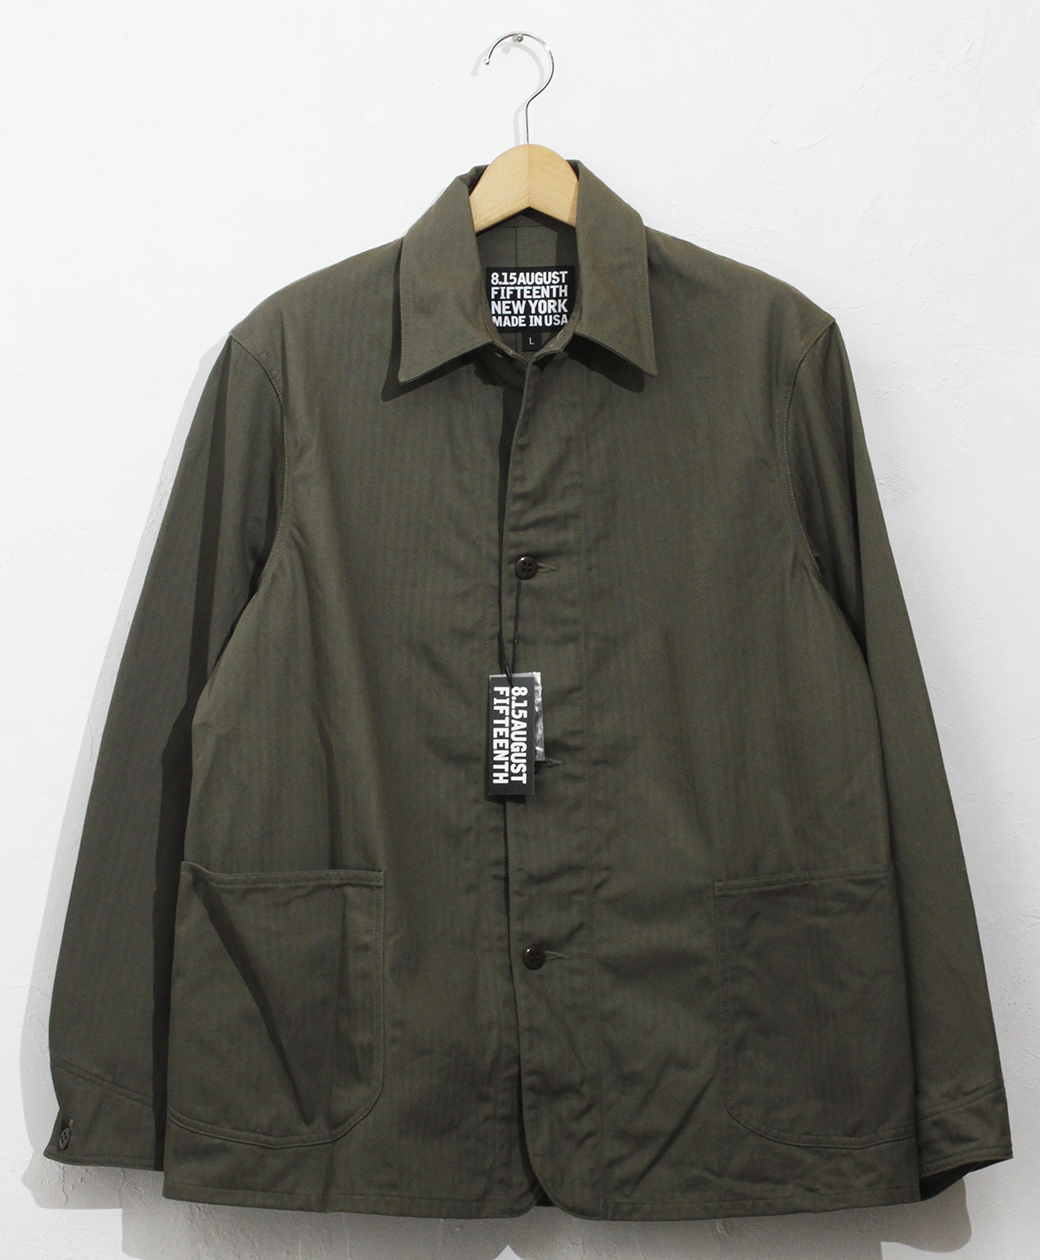 2020AW COLLECTION SALE !! 8.15 August Fifteenth INDUSTRIAL COVERALL JACKET(HERRINGBONE TWILL)